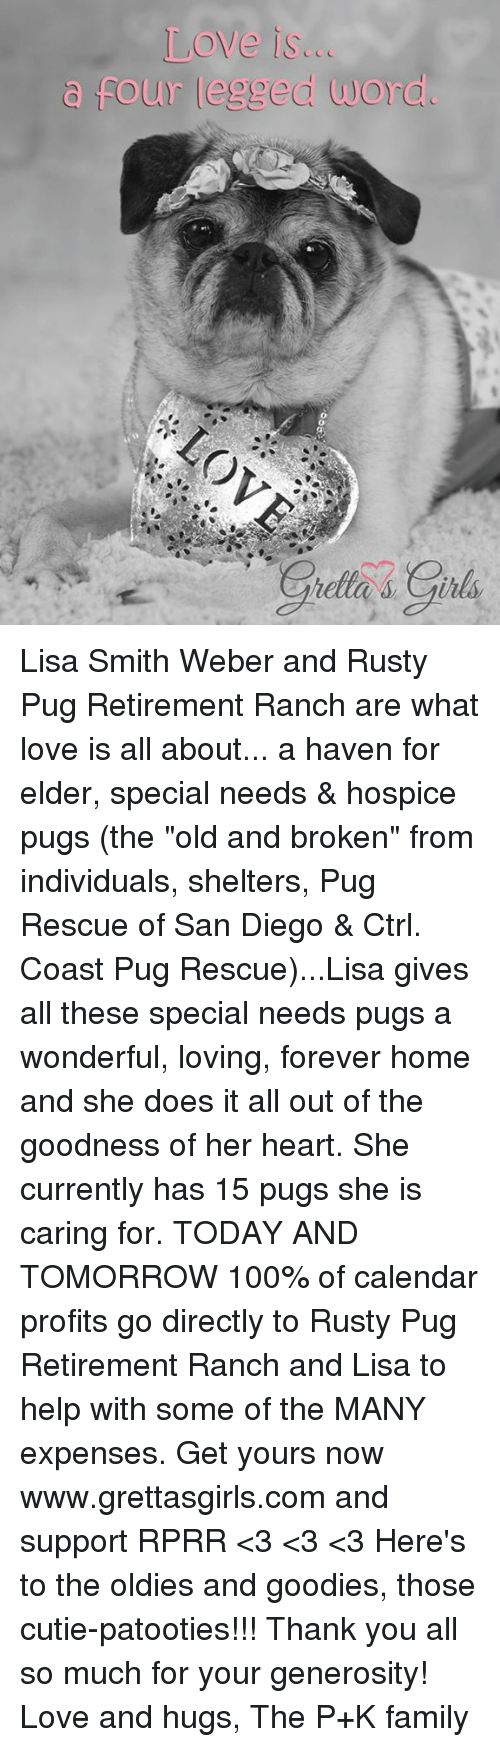 """Memes, Calendar, and Leggings: Love is...  four legged word. Lisa Smith Weber and Rusty Pug Retirement Ranch are what love is all about... a haven for elder, special needs & hospice pugs (the """"old and broken"""" from individuals, shelters, Pug Rescue of San Diego & Ctrl. Coast Pug Rescue)...Lisa gives all these special needs pugs a wonderful, loving, forever home and she does it all out of the goodness of her heart. She currently has 15 pugs she is caring for.   TODAY AND TOMORROW 100% of calendar profits go directly to Rusty Pug Retirement Ranch and Lisa to help with some of the MANY expenses. Get yours now www.grettasgirls.com and support RPRR <3 <3 <3 Here's to the oldies and goodies, those cutie-patooties!!!  Thank you all so much for your generosity! Love and hugs, The P+K family"""